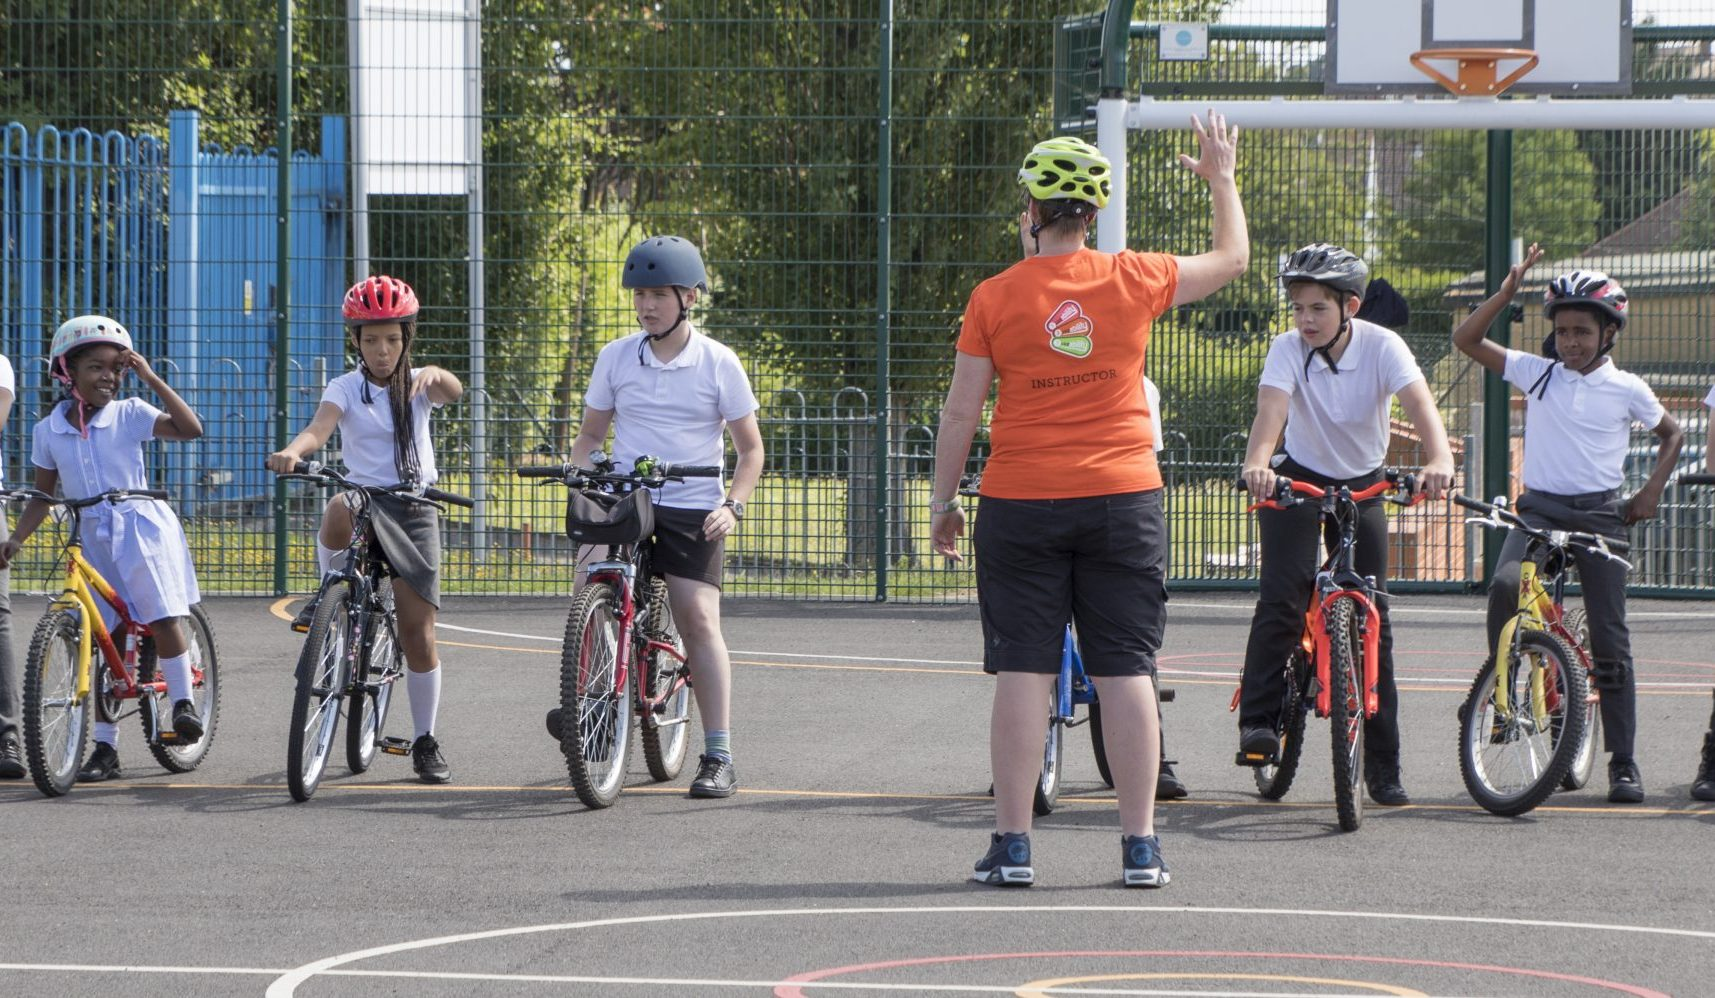 An instructor in front of a line of children on bikes